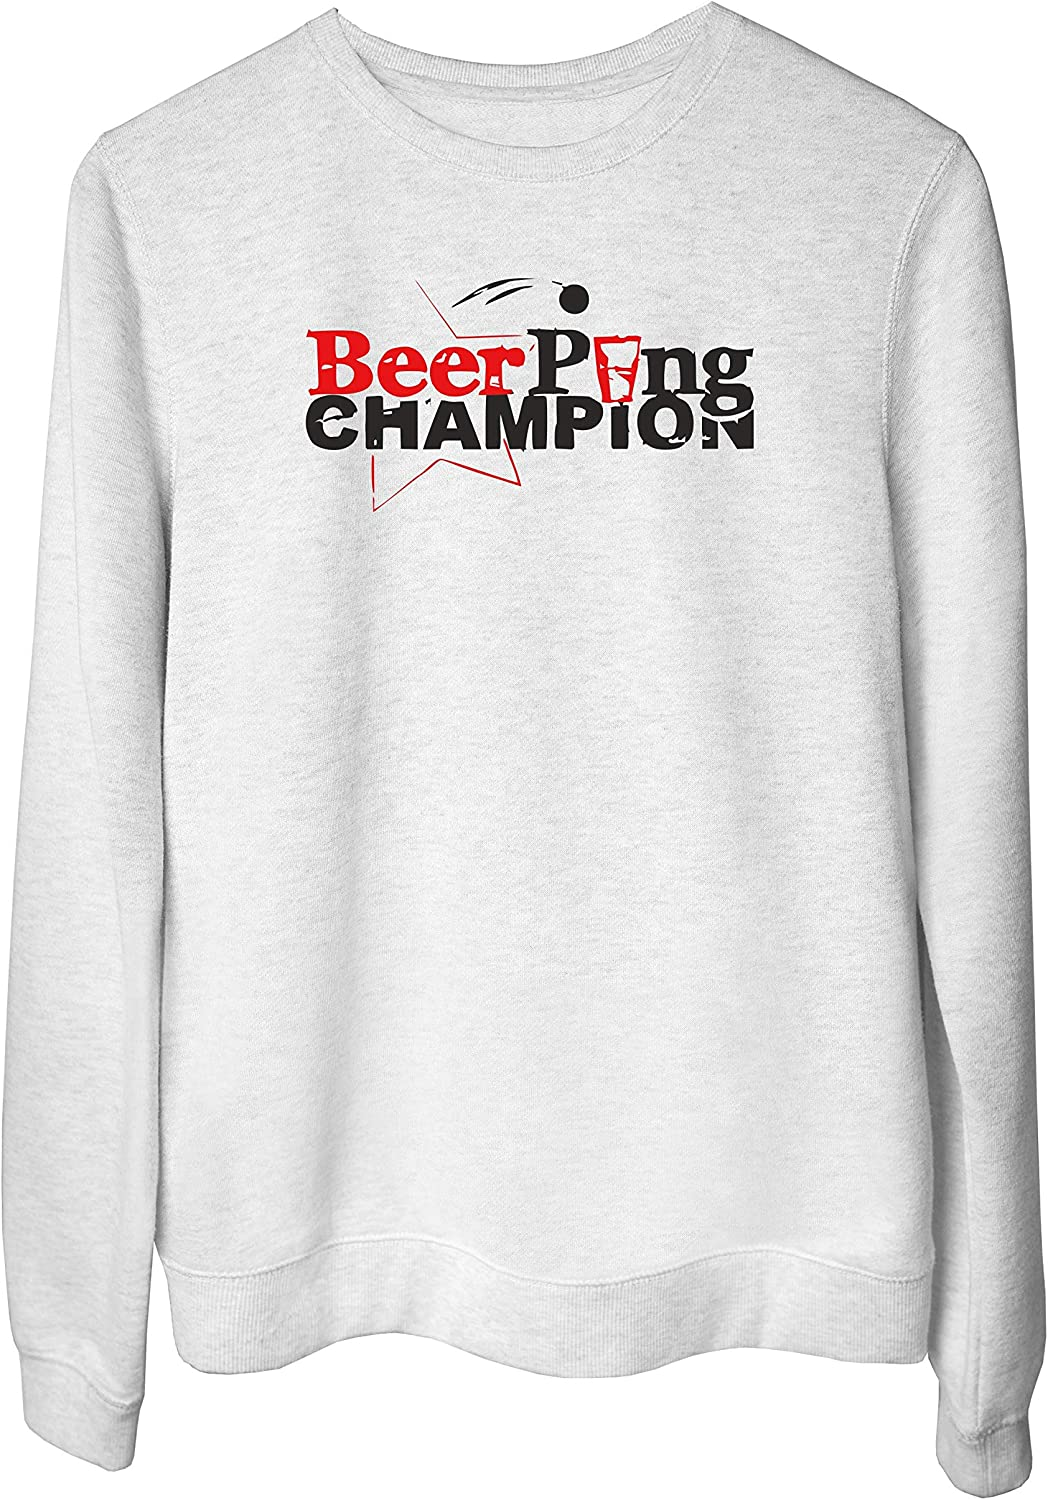 Felpa Girocollo Donna Bianco DEC0461 WTC0251 Beer Pong Champion Tshirt 1